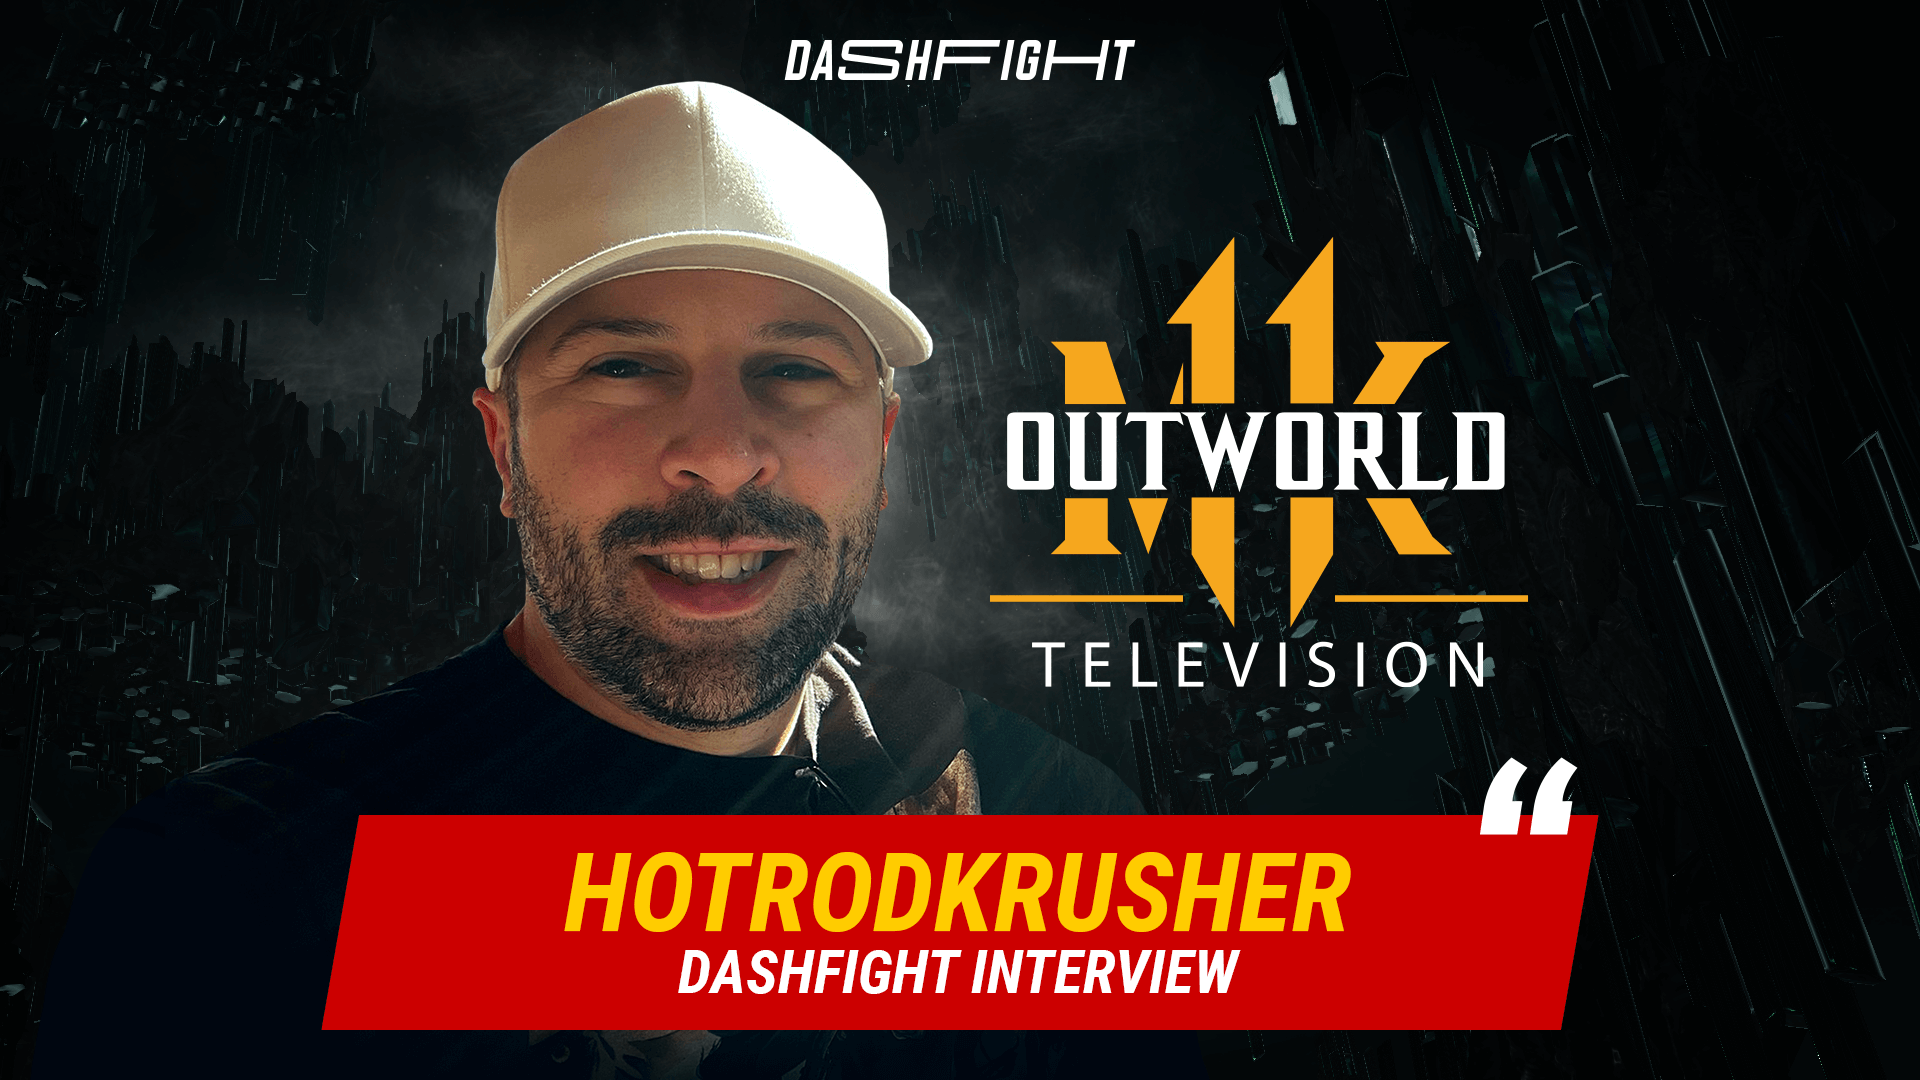 Interview with hotrodkrusher by DashFight